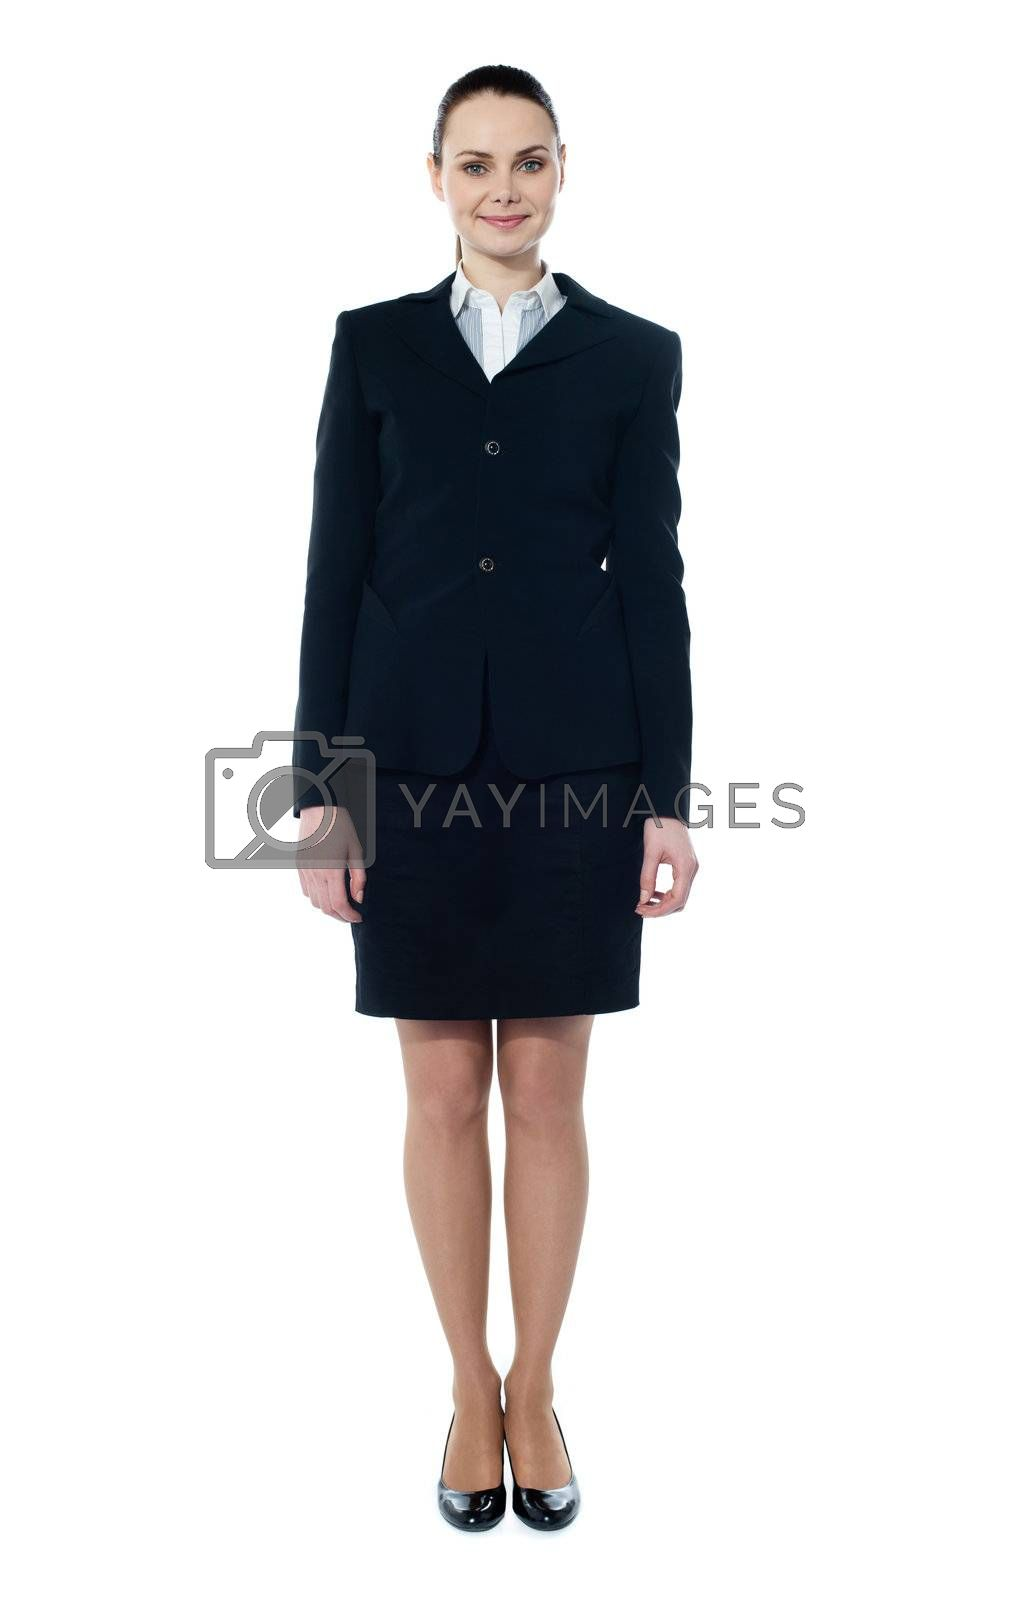 Businesswoman full body standing isolated on white